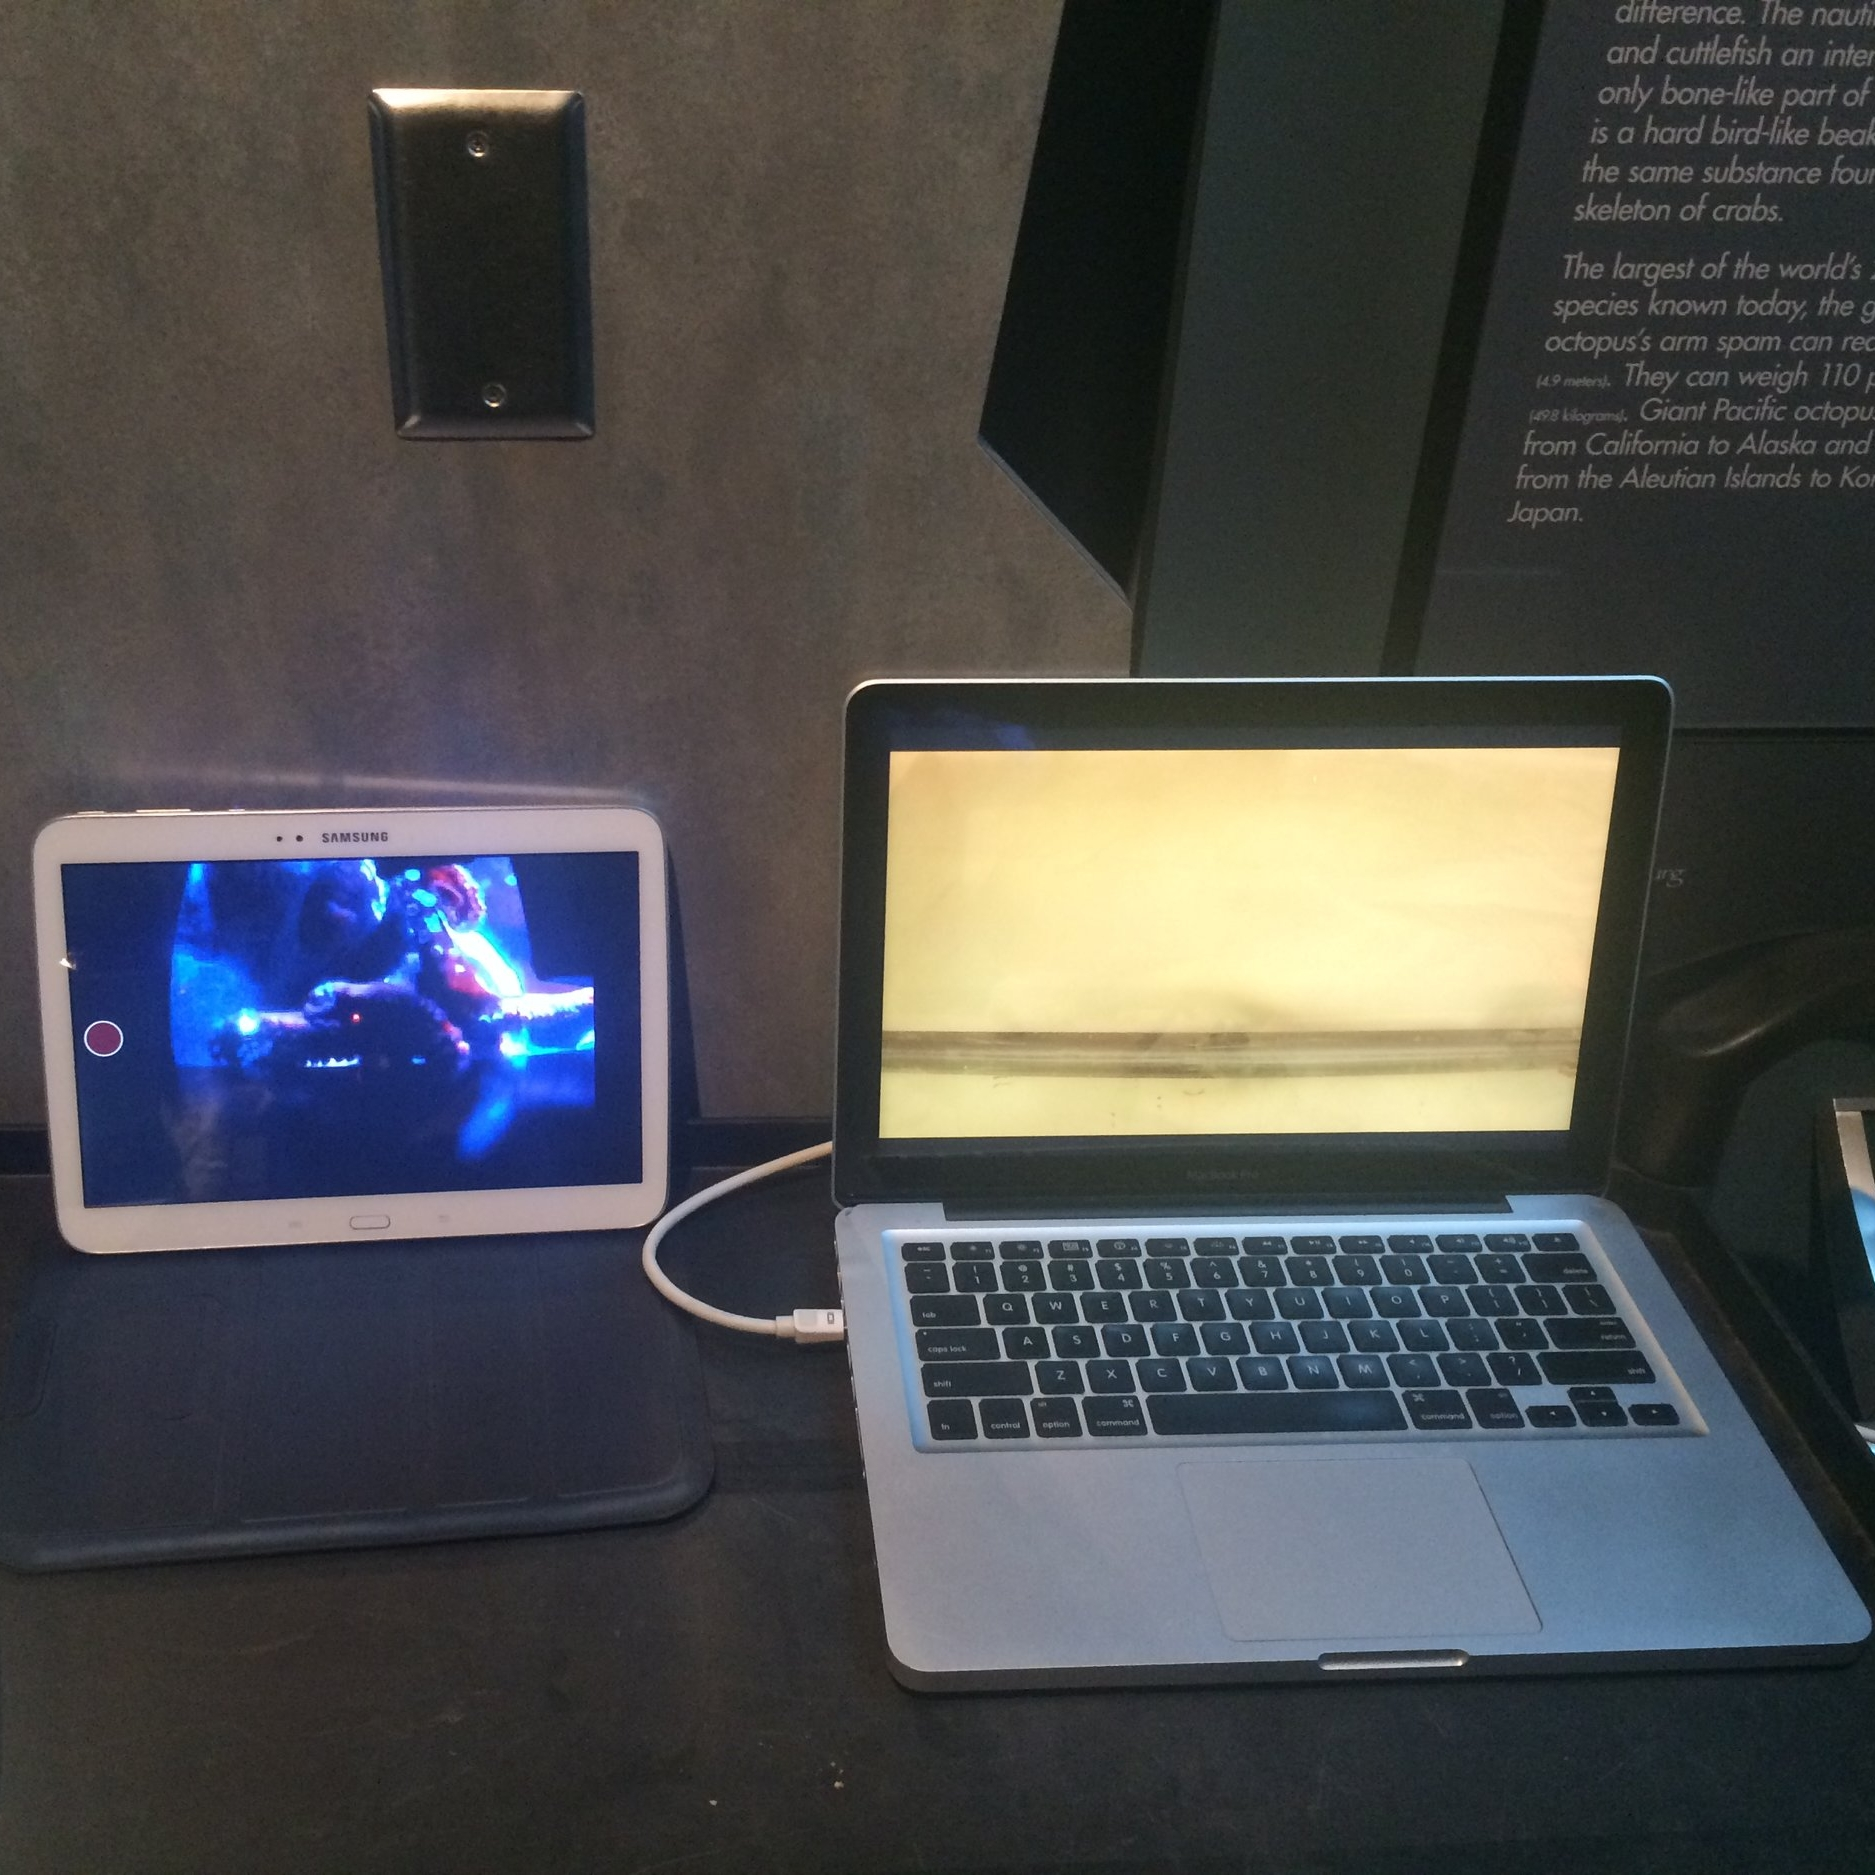 A tablet displays a live video feed of the GPO's reactions (left) while the laptop connected to the TV screen behind the curtain plays the trial video (right).